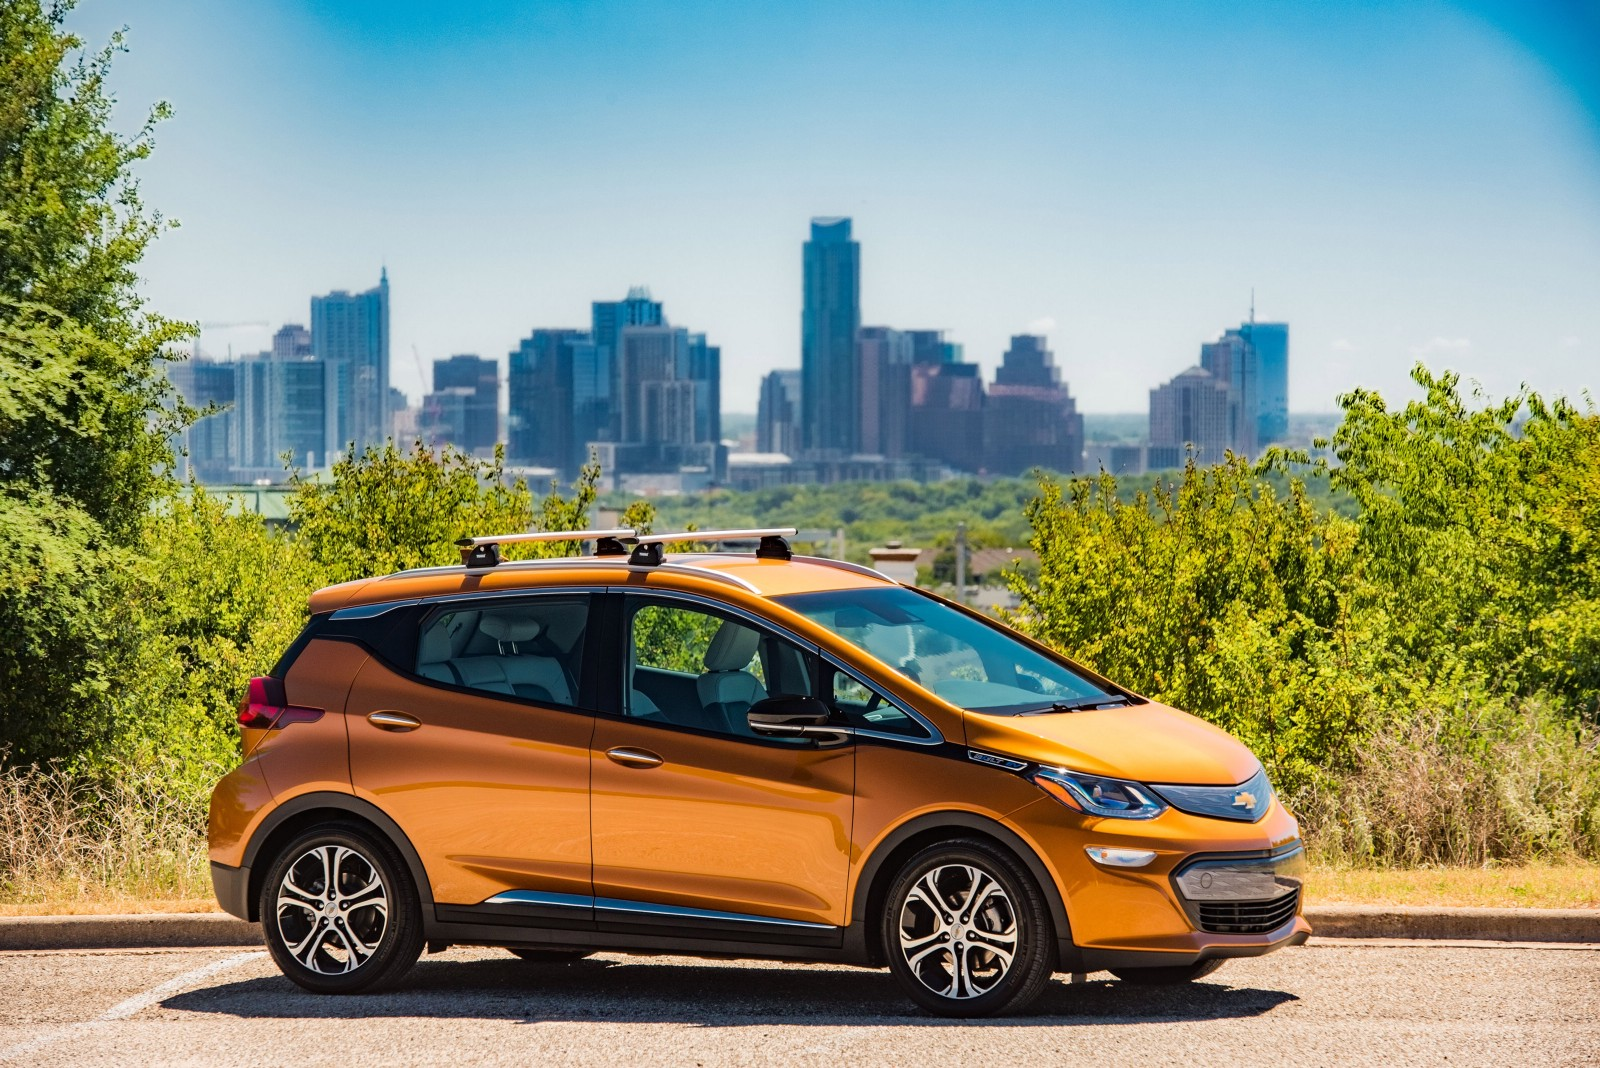 The Chevy Bolt With An Impressive 238 Mile Driving Range Is First M Market All Electric Vehicle